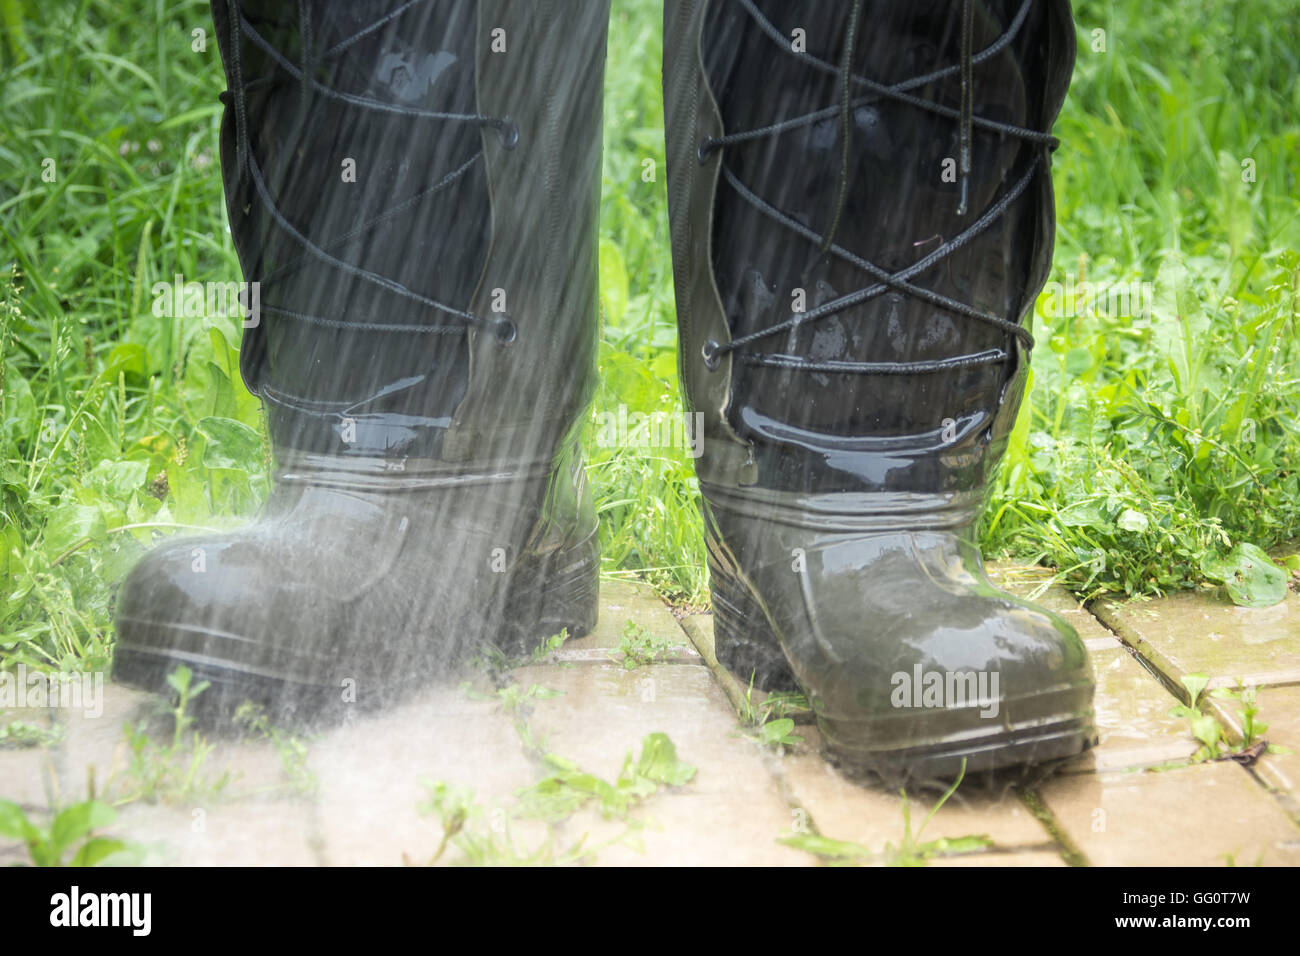 Rubber boots in the rain, close-up Stock Photo